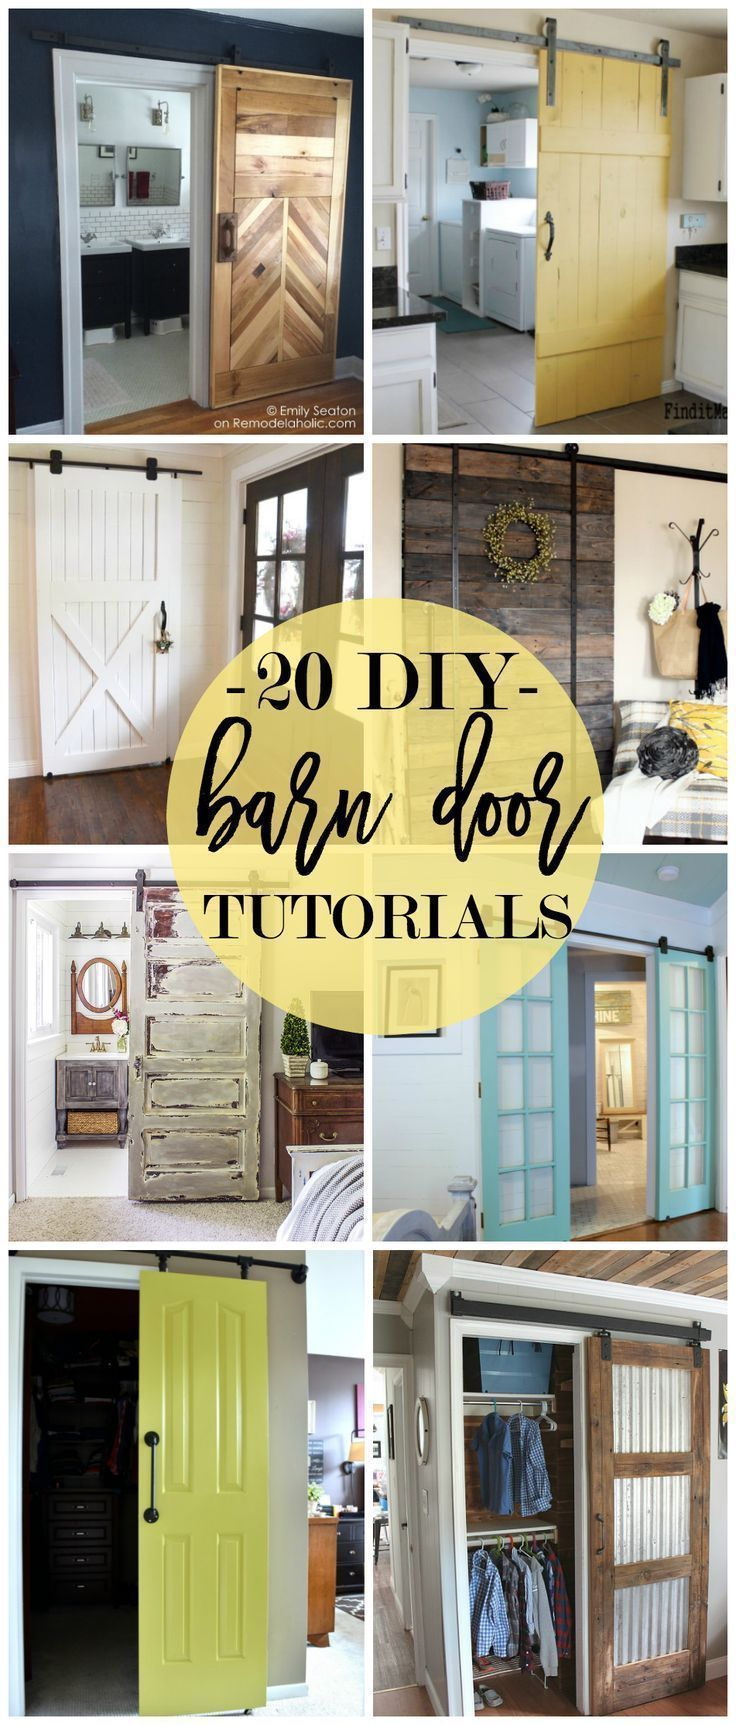 20 diy barn door tutorials einrichten und wohnen und wohnen. Black Bedroom Furniture Sets. Home Design Ideas